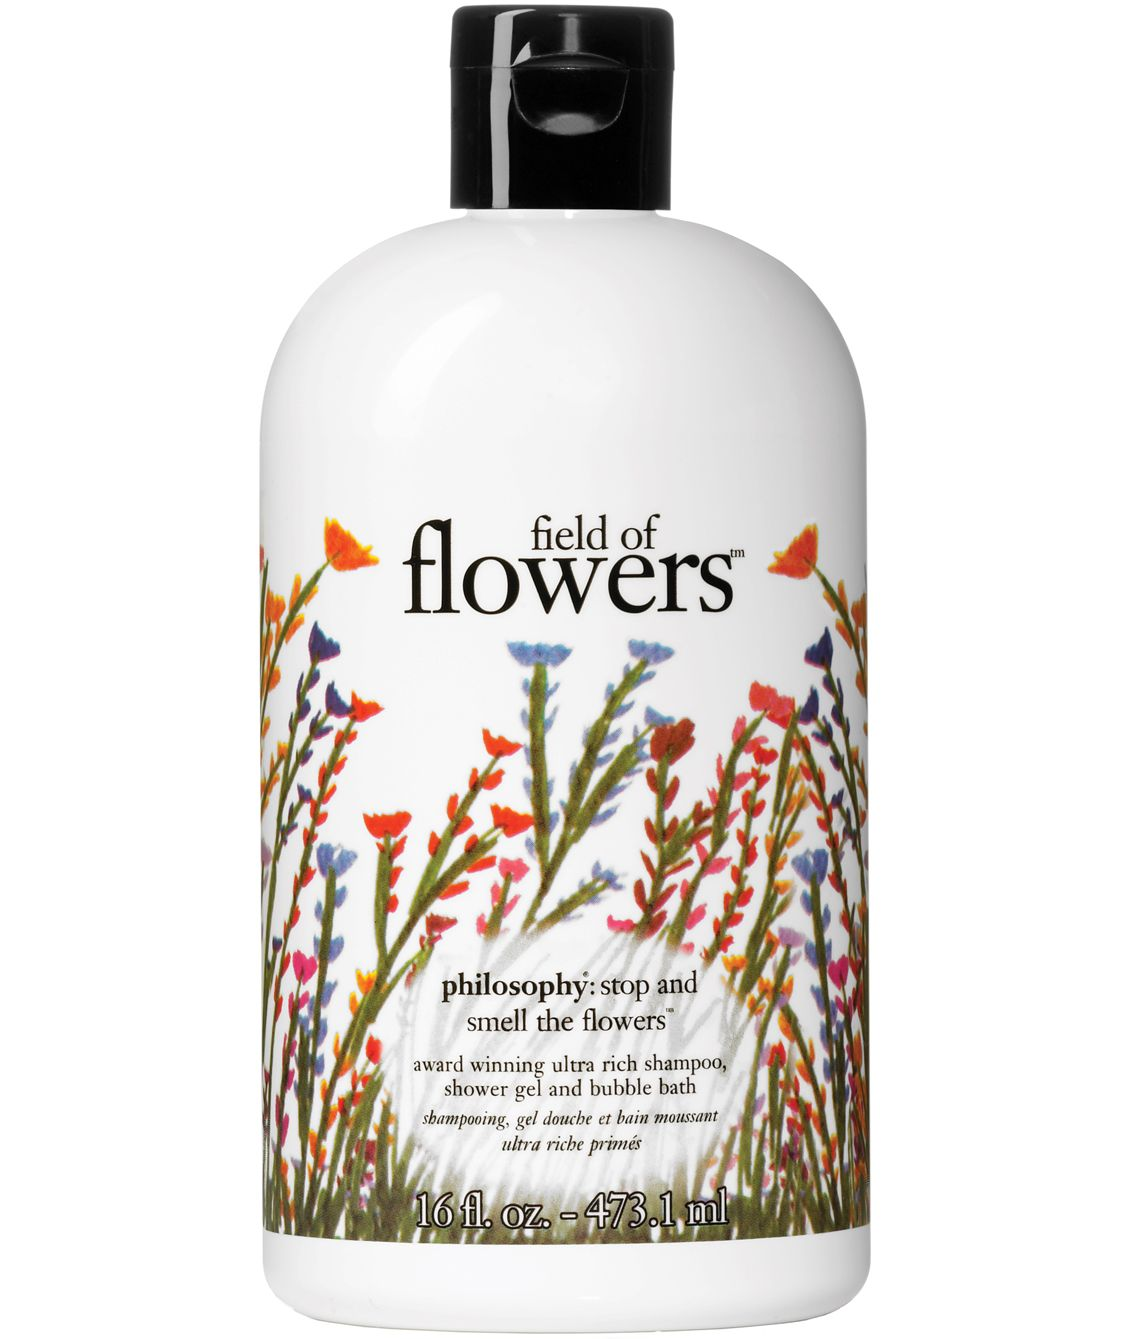 Philosophy Field Of Flowers 3 In 1 Smells Amazing And Is Great As A Date Night Shampoo Shower Gel Shampoo Bath And Body